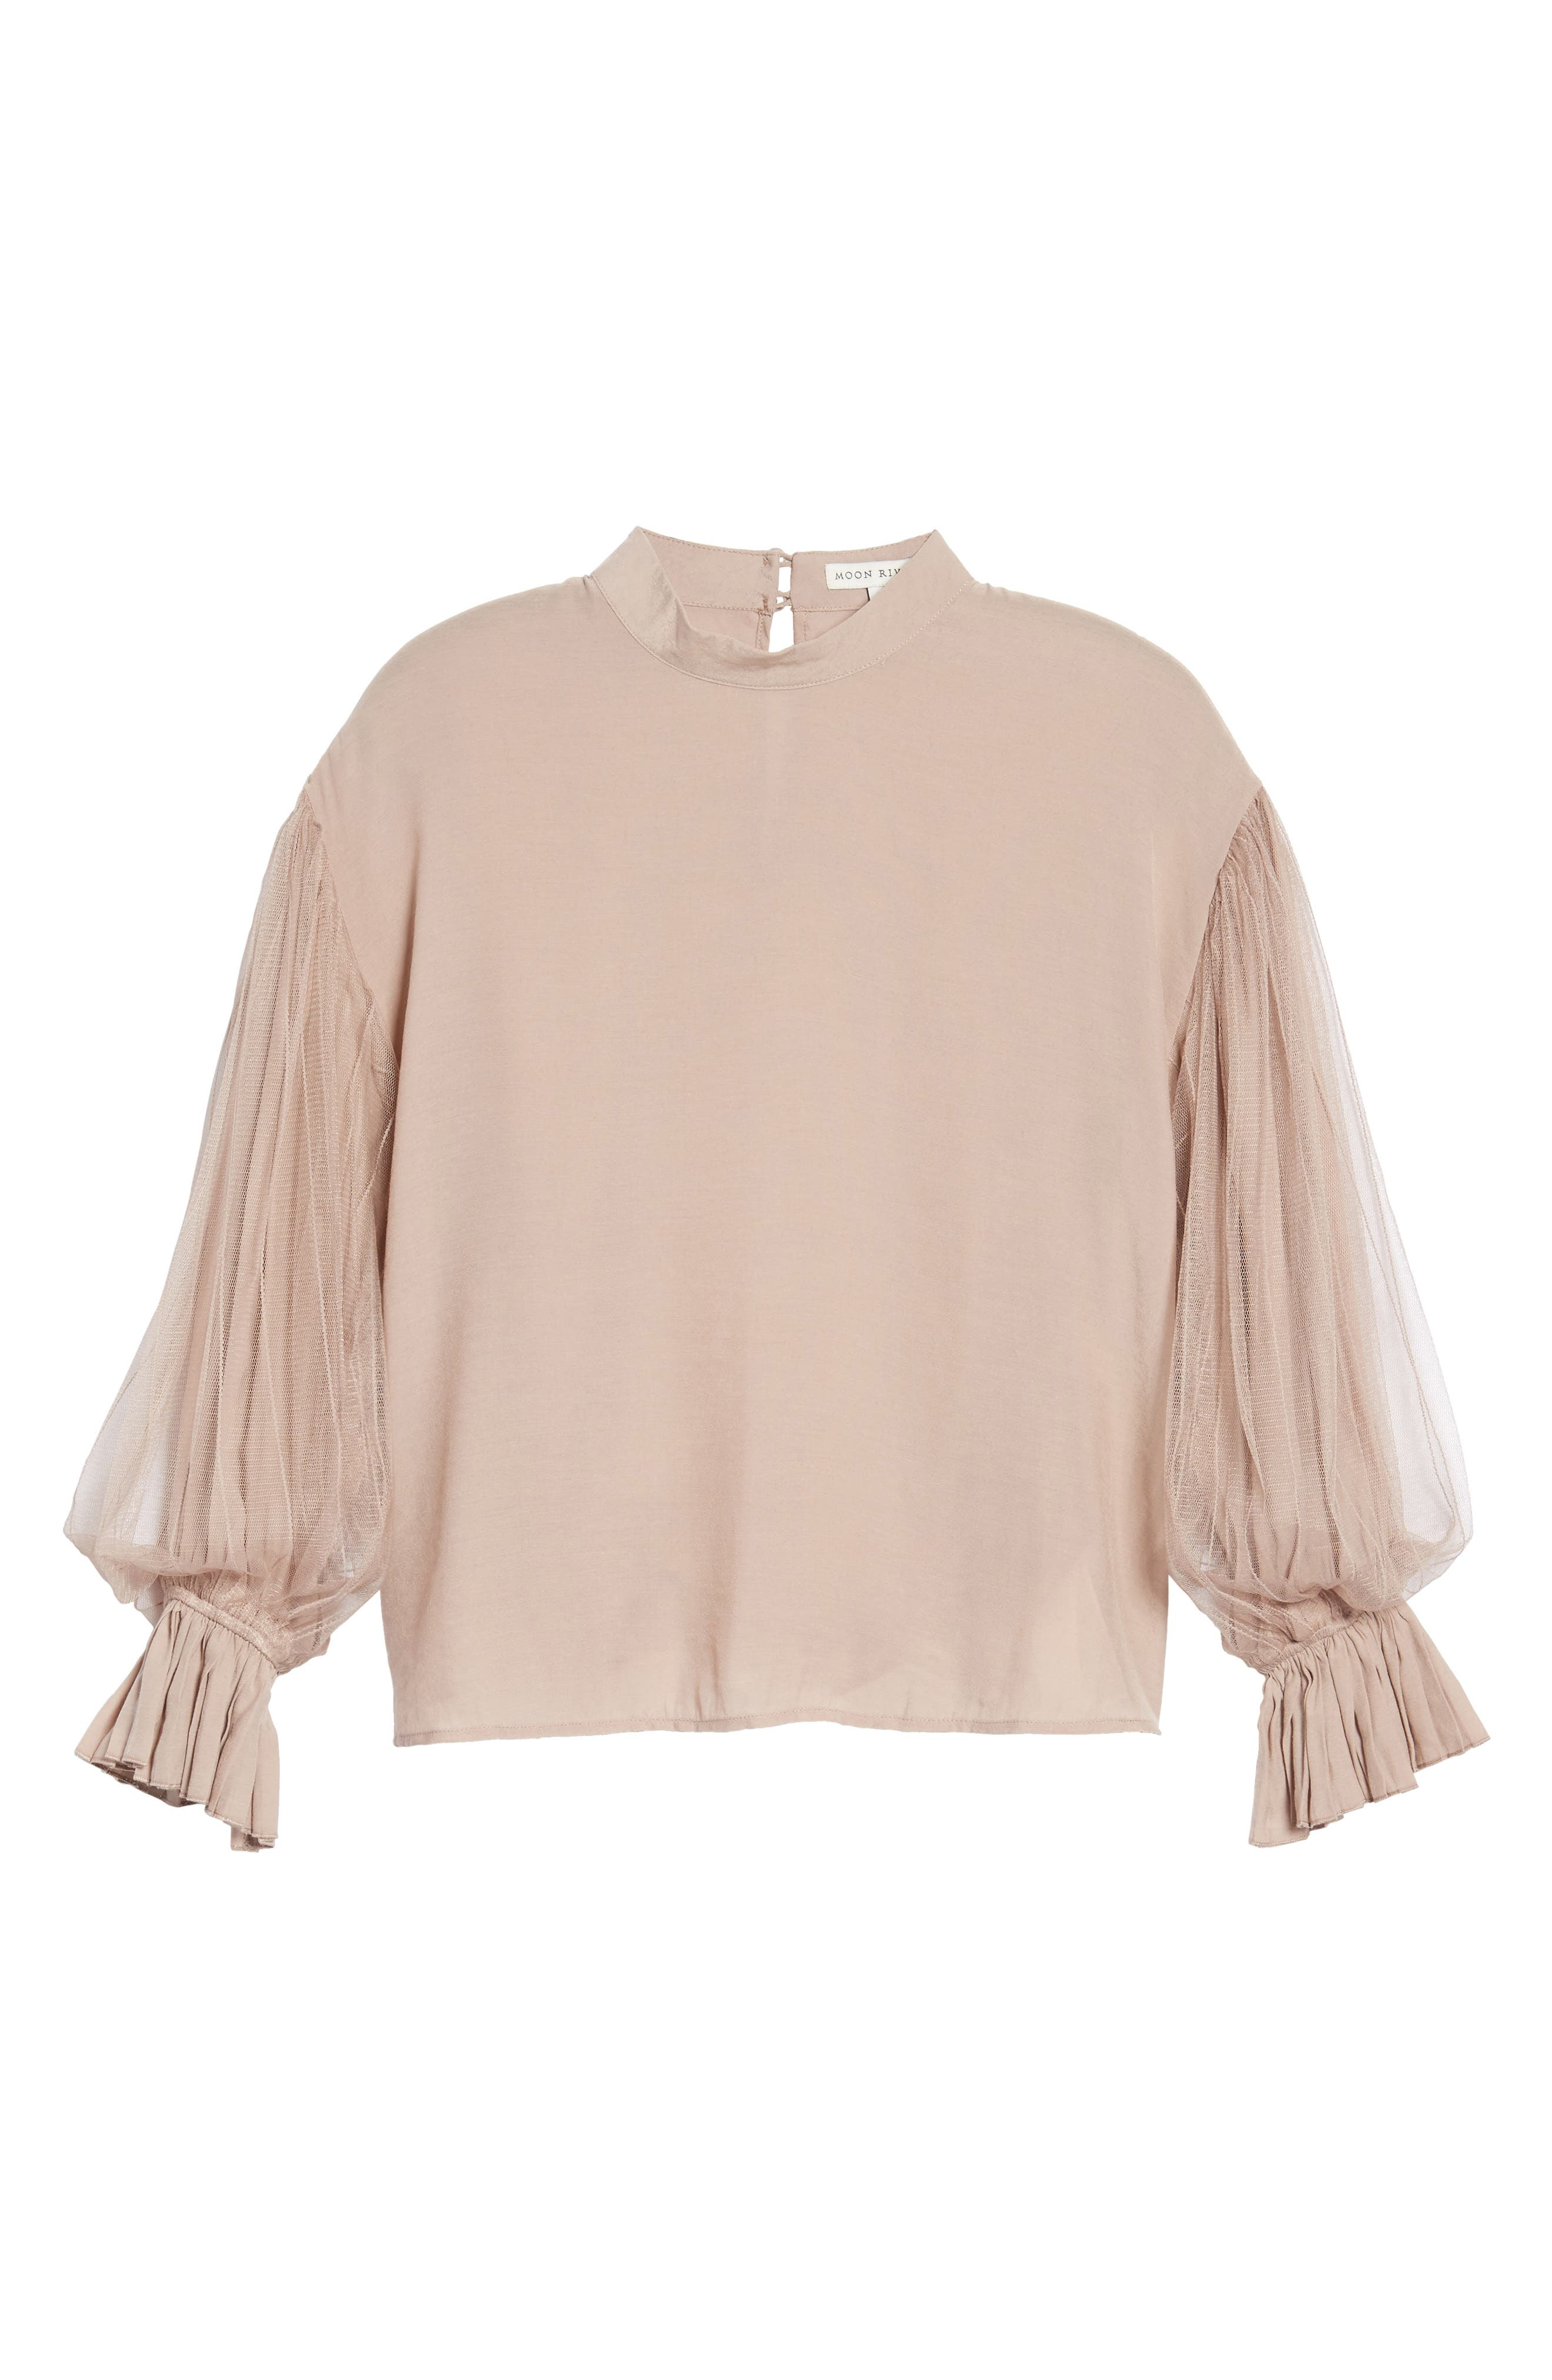 Tulle Puff Sleeve Top,                             Alternate thumbnail 6, color,                             Dusty Rose